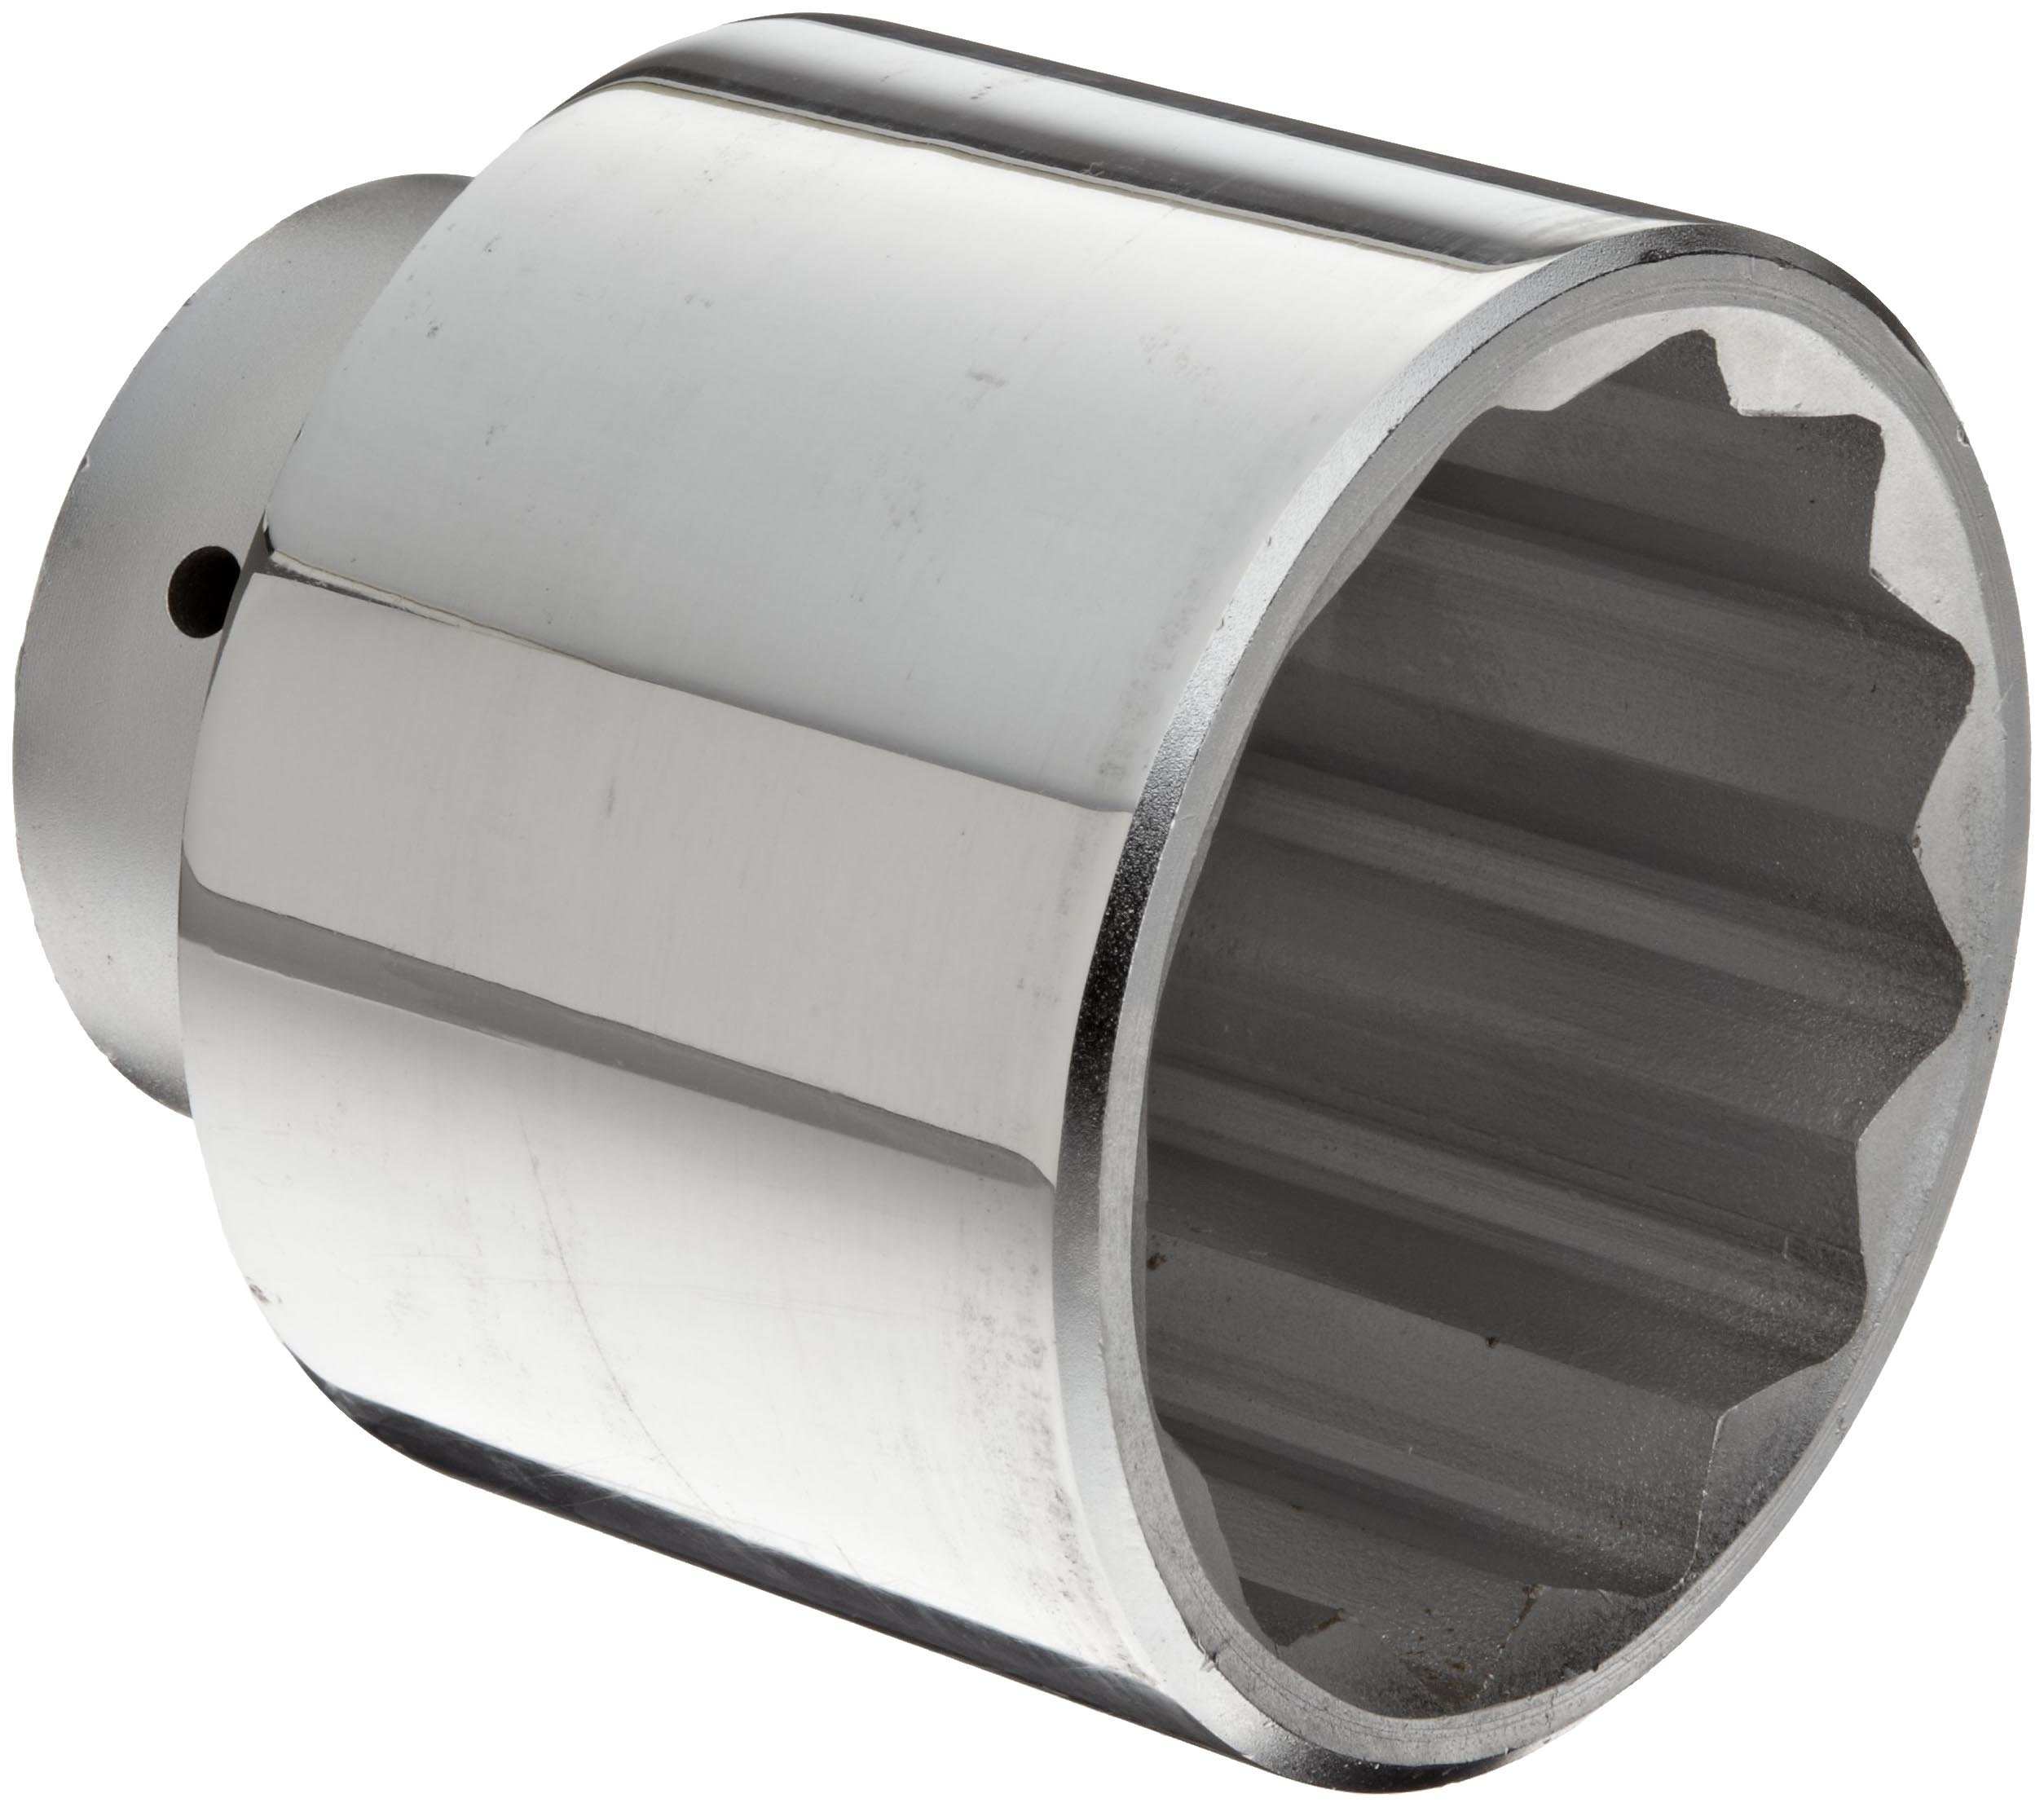 Martin X1296 Forged Alloy Steel 3'' Type III Opening 1'' Power Impact Square Drive Socket, 12 Points Standard, 3-15/16'' Overall Length, Chrome Finish